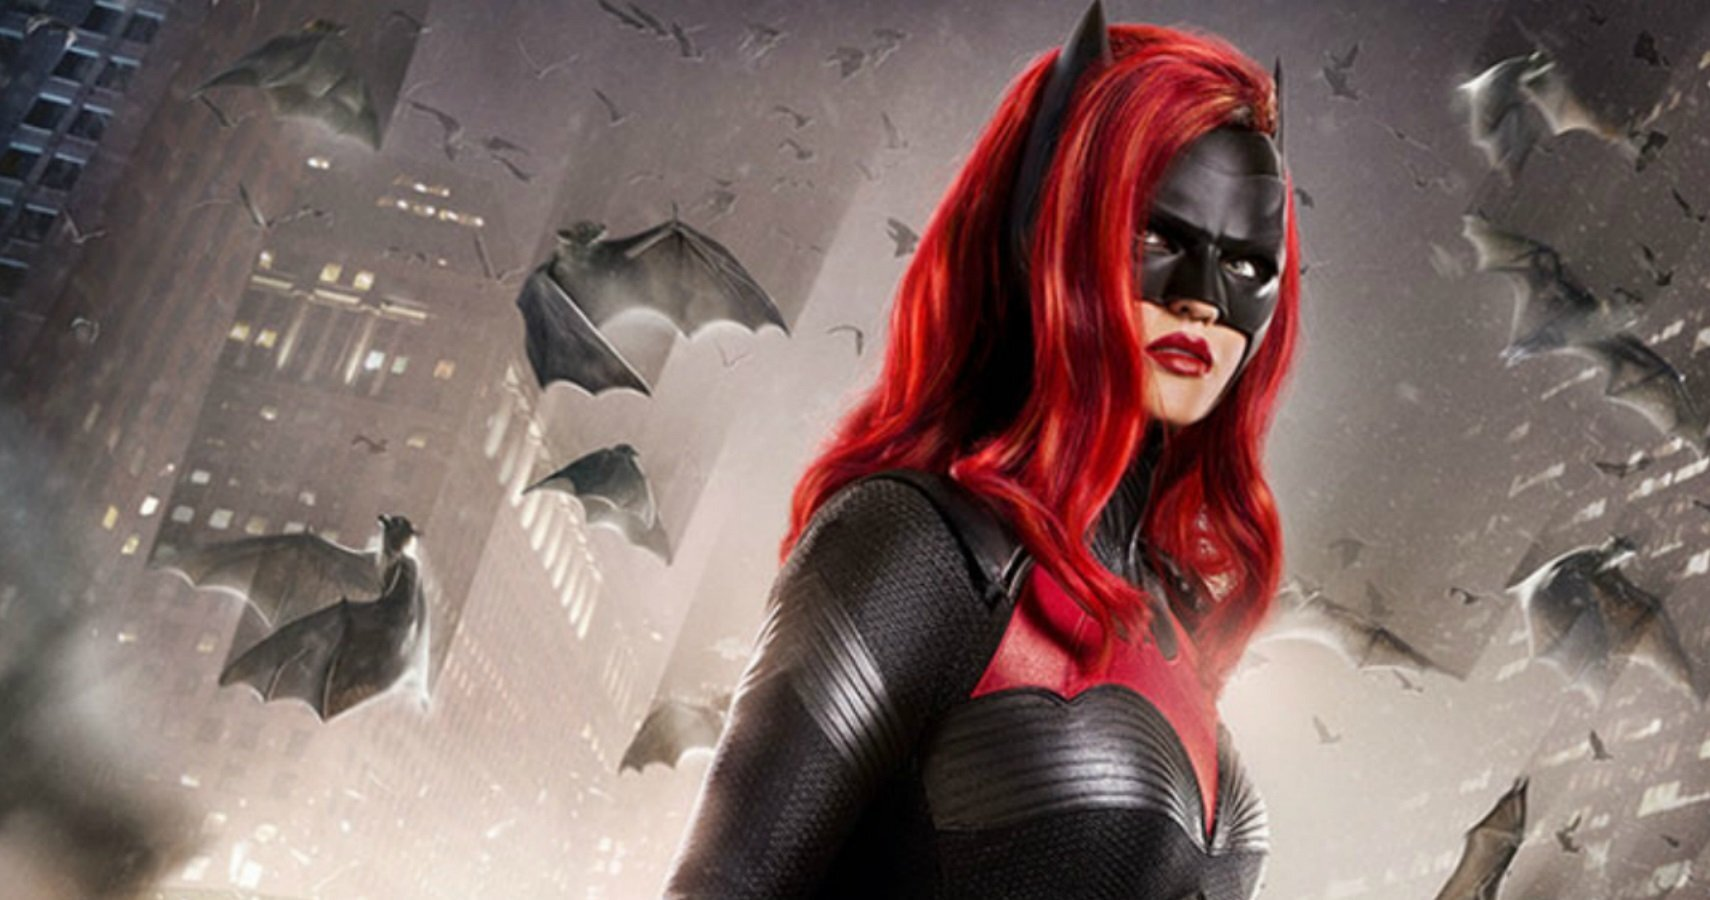 Arrowverse Fans Are Going Crazy Over The New Batwoman